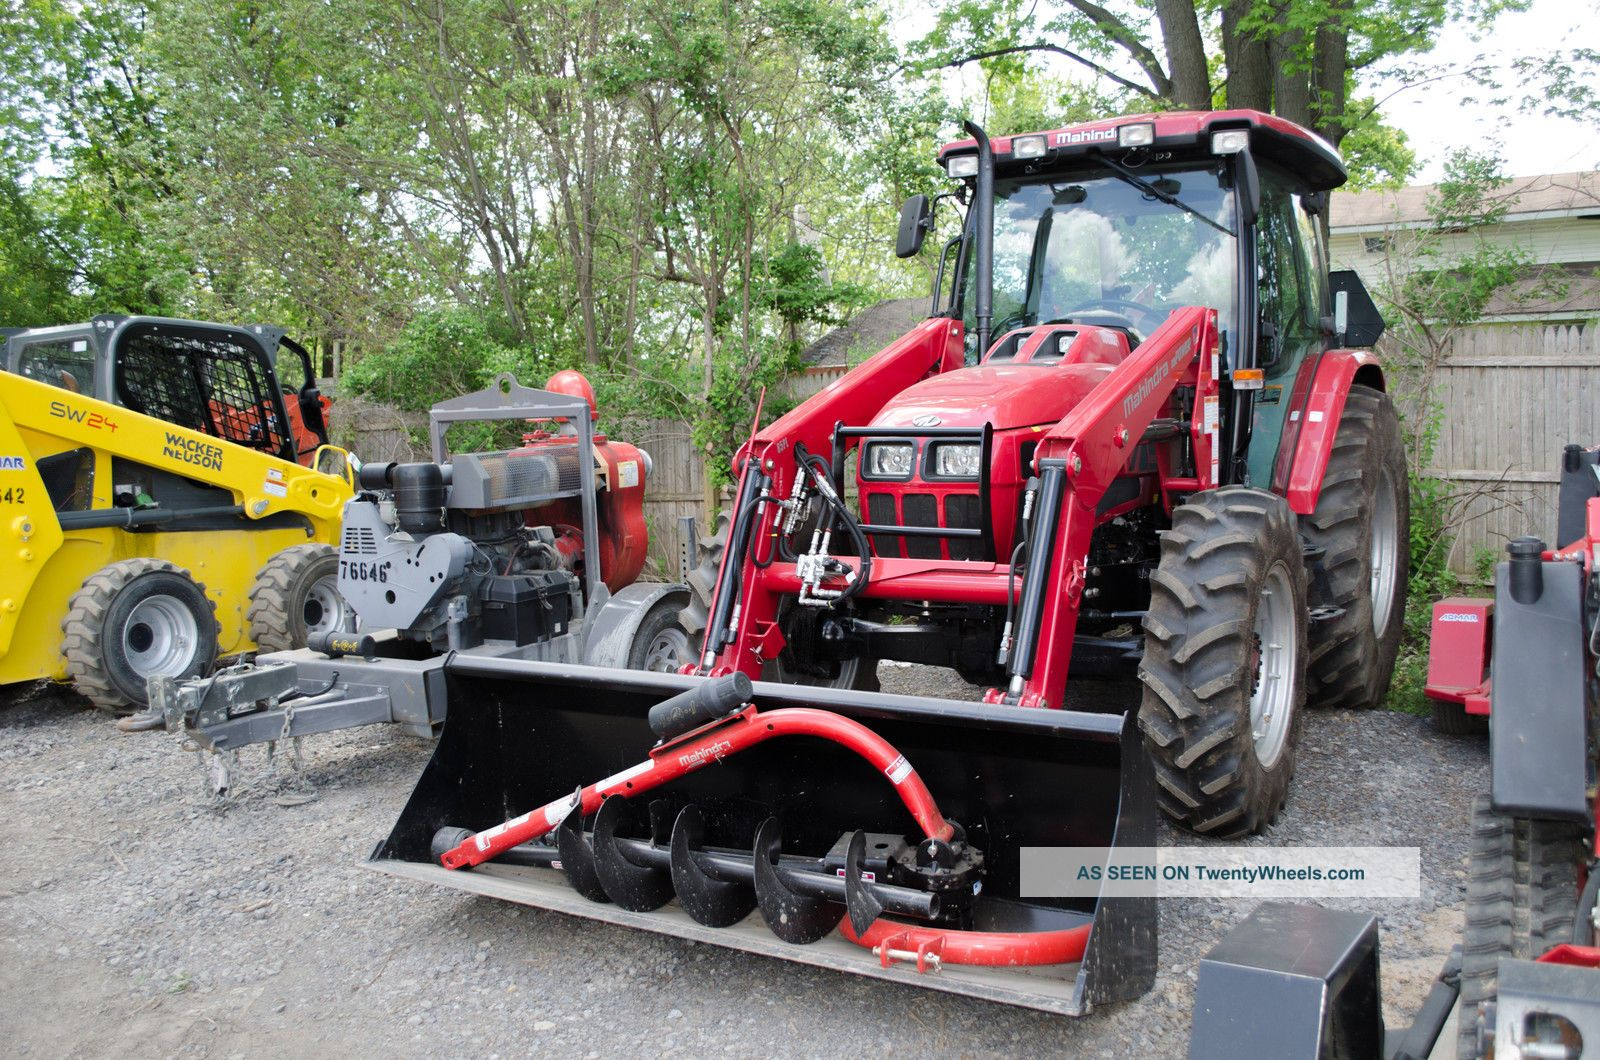 Mahindra Tractor Rims : Mahindra mpower p tractor loader with cab